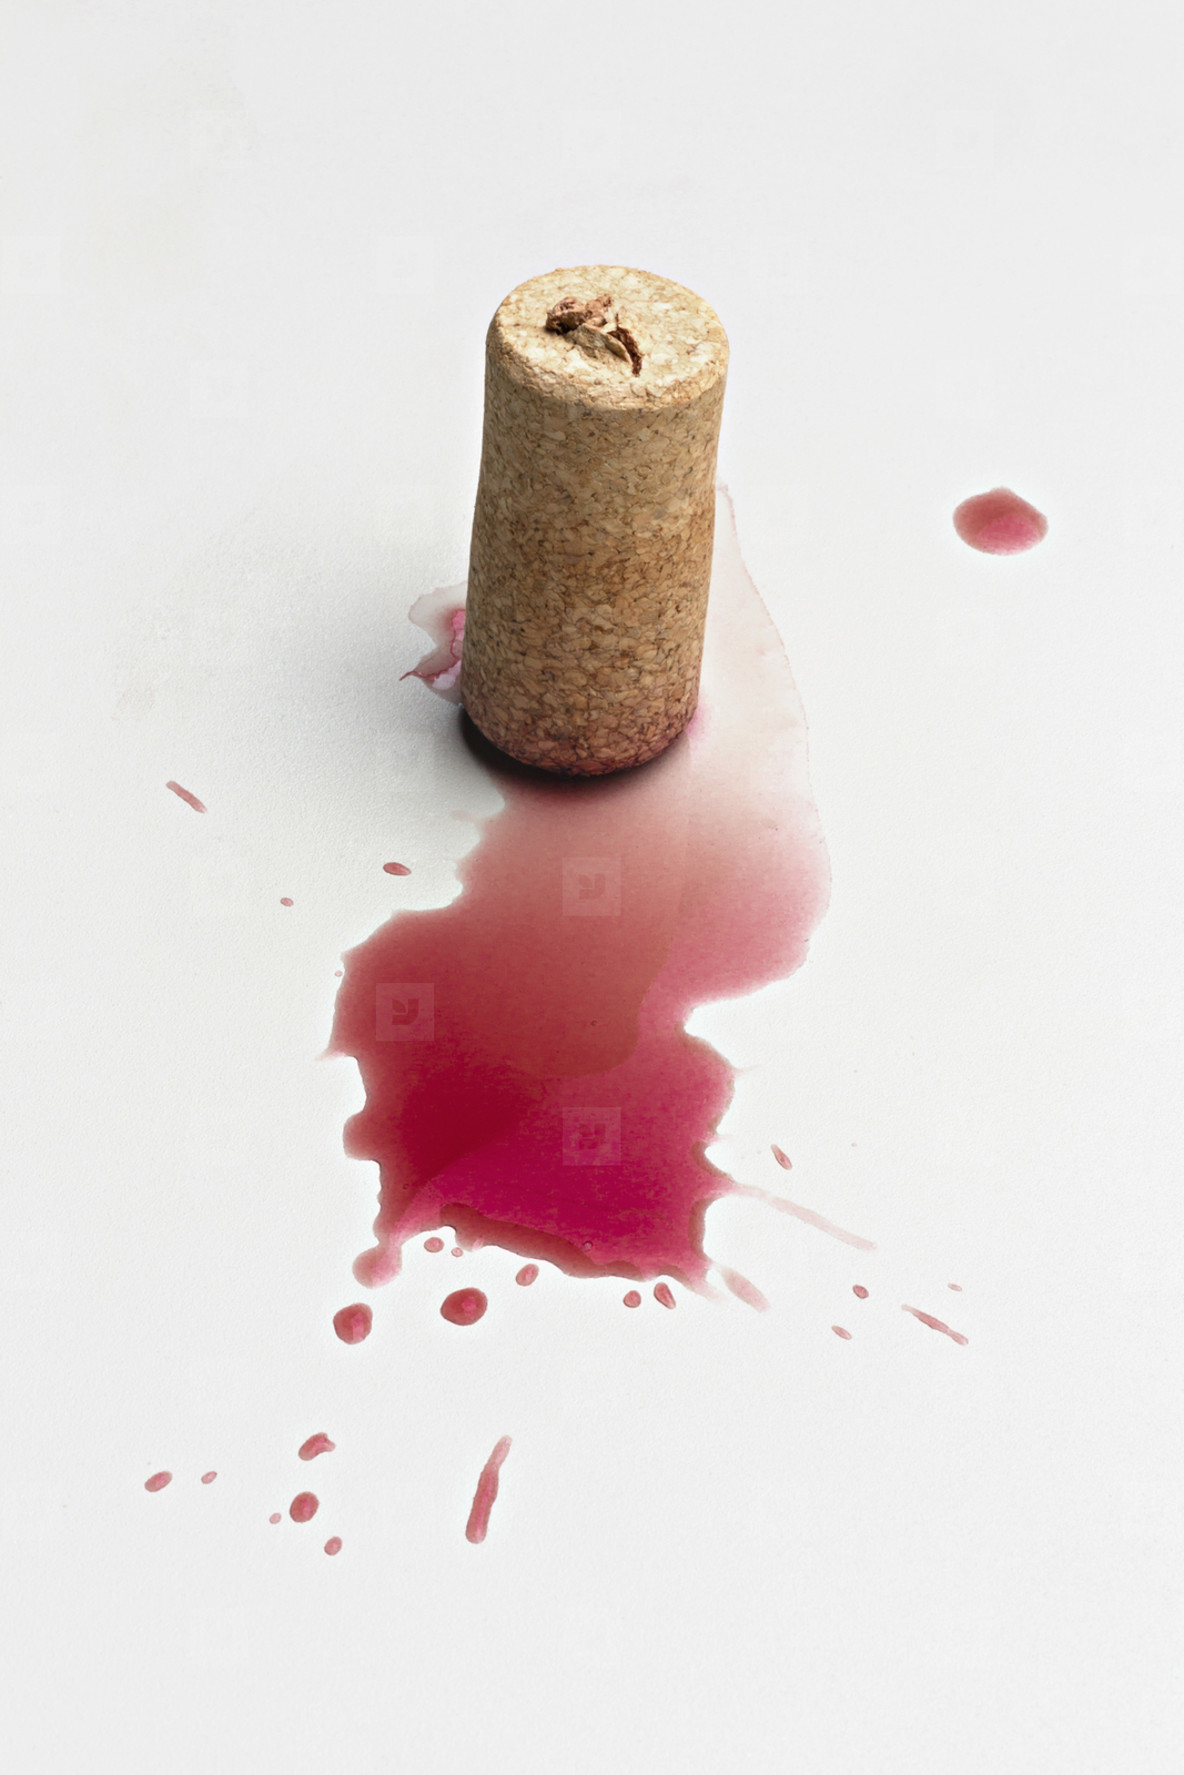 Cork and red wine splatter on white background